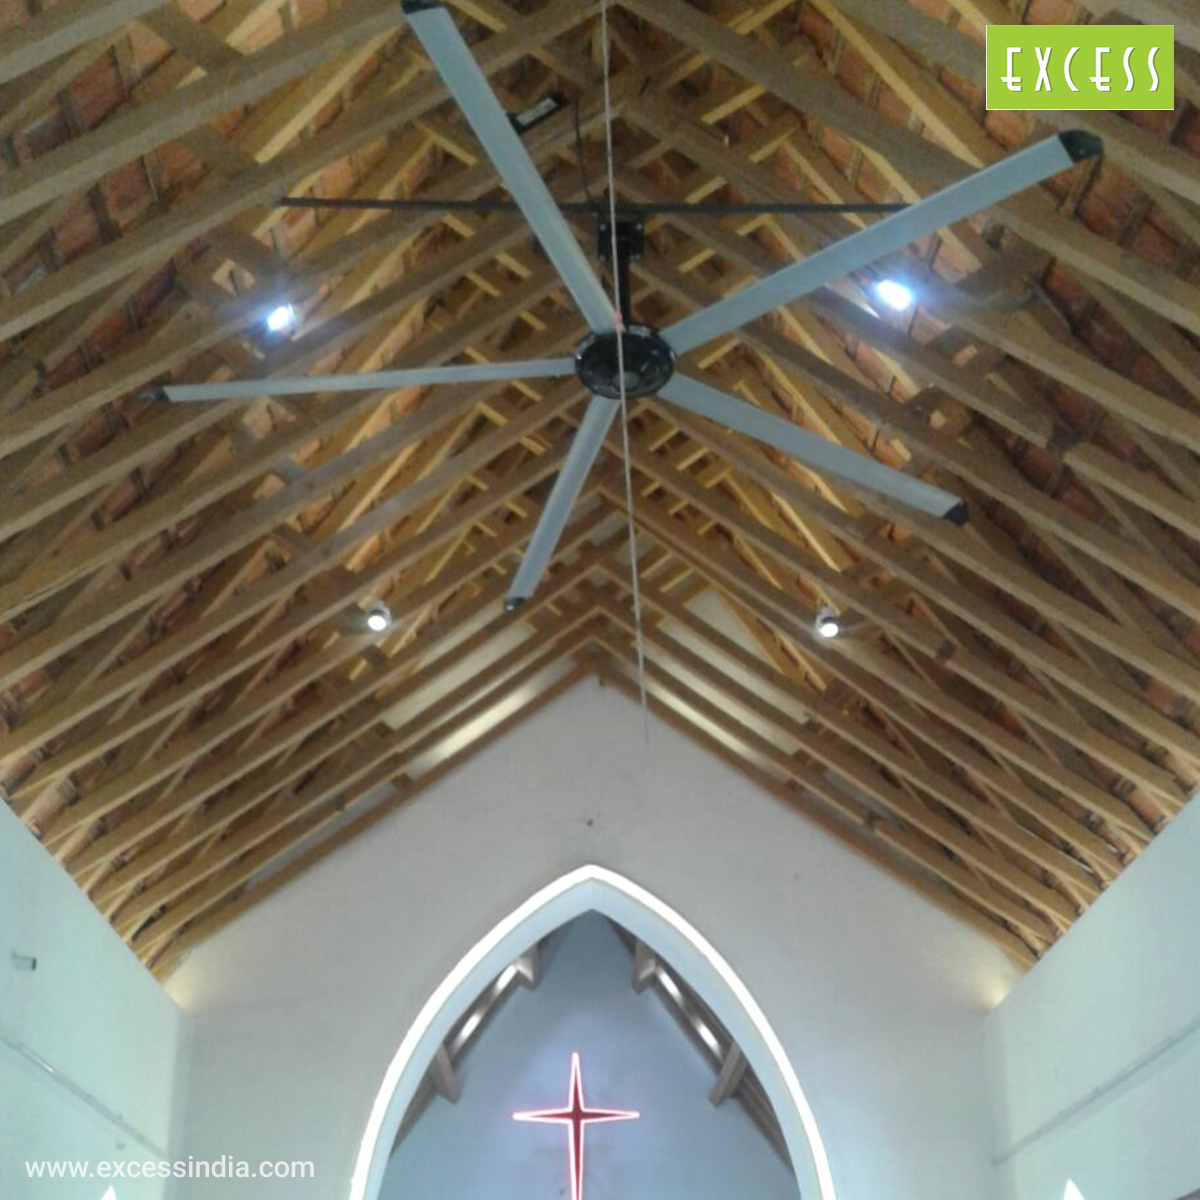 Large Church HVLS Fans - Excess India